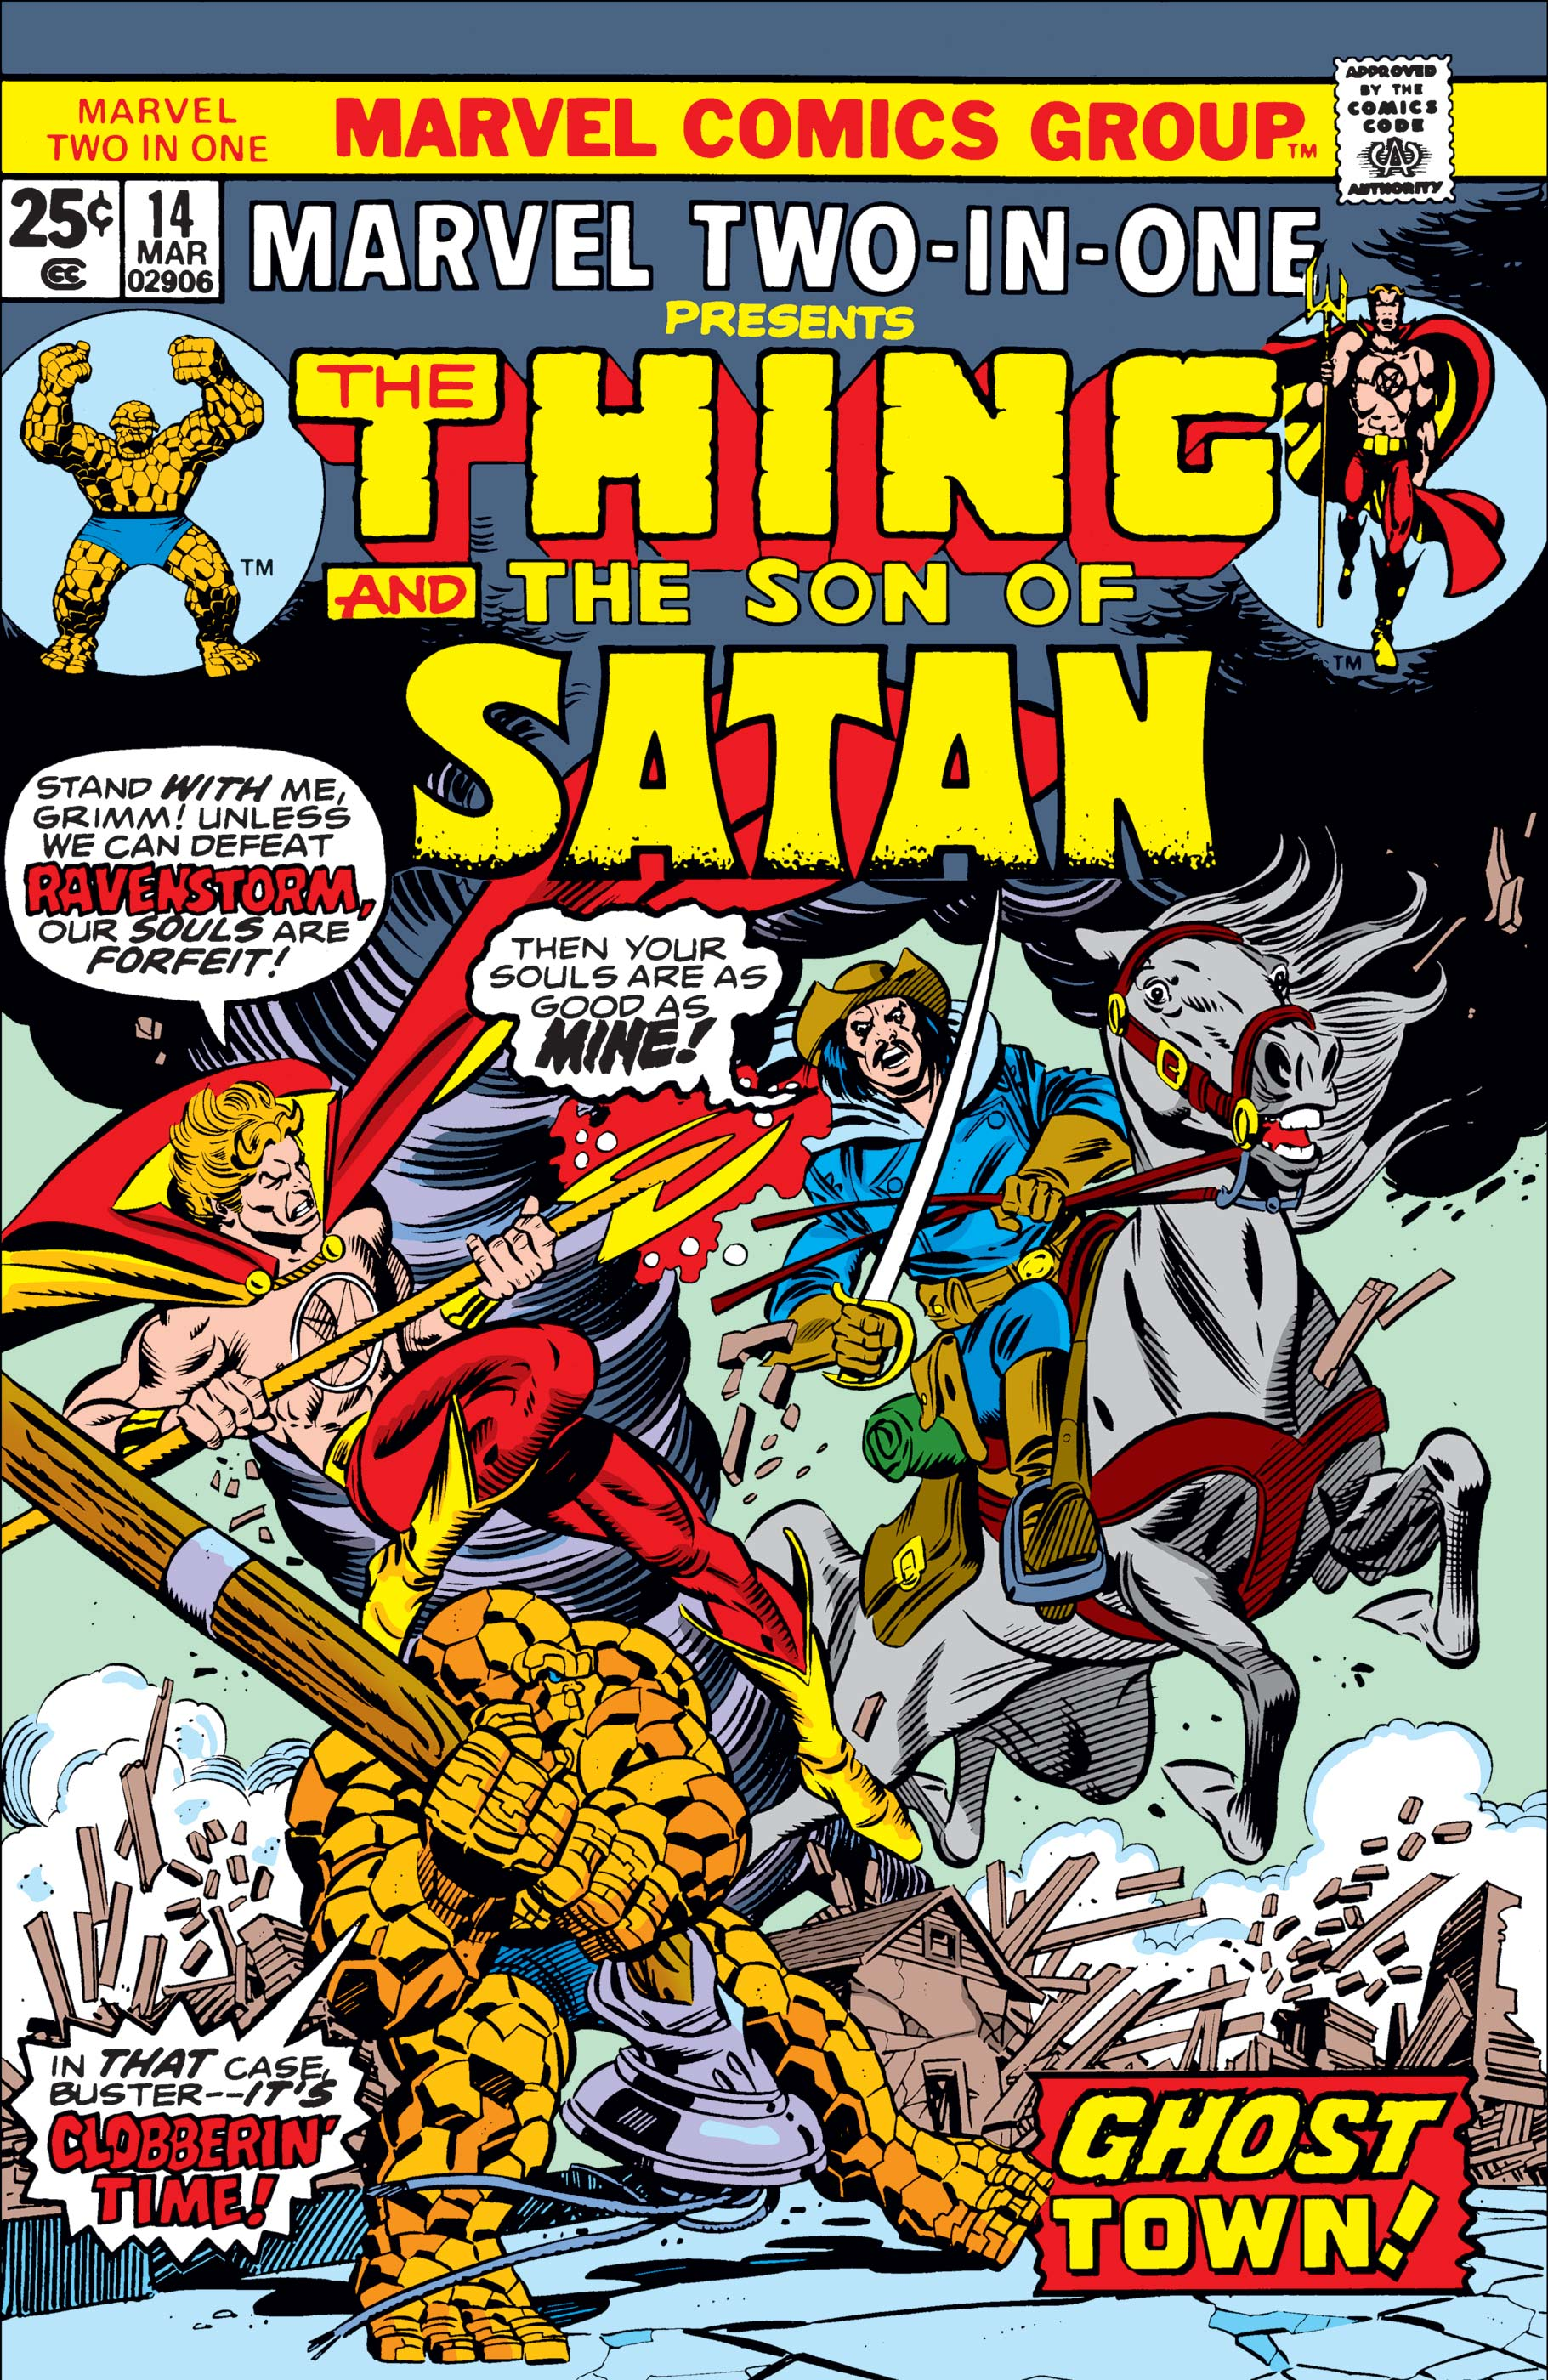 Marvel Two-in-One (1974) #14